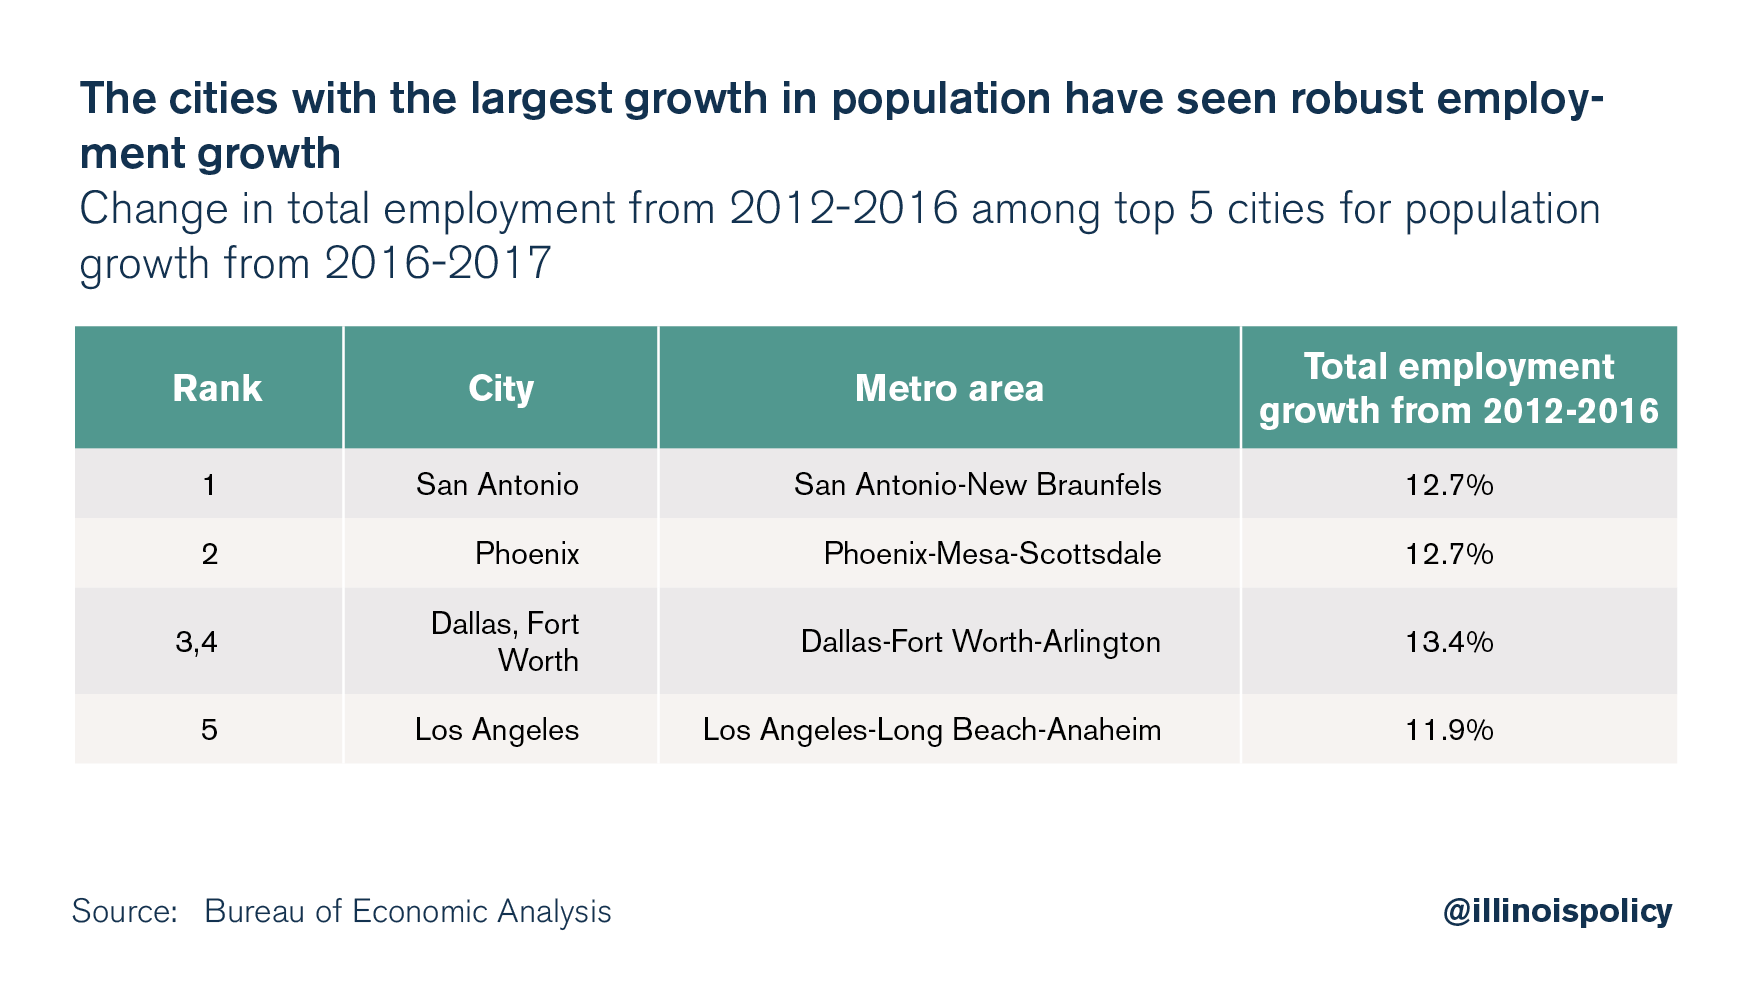 The cities with the largest growth in population have seen robust employment growth